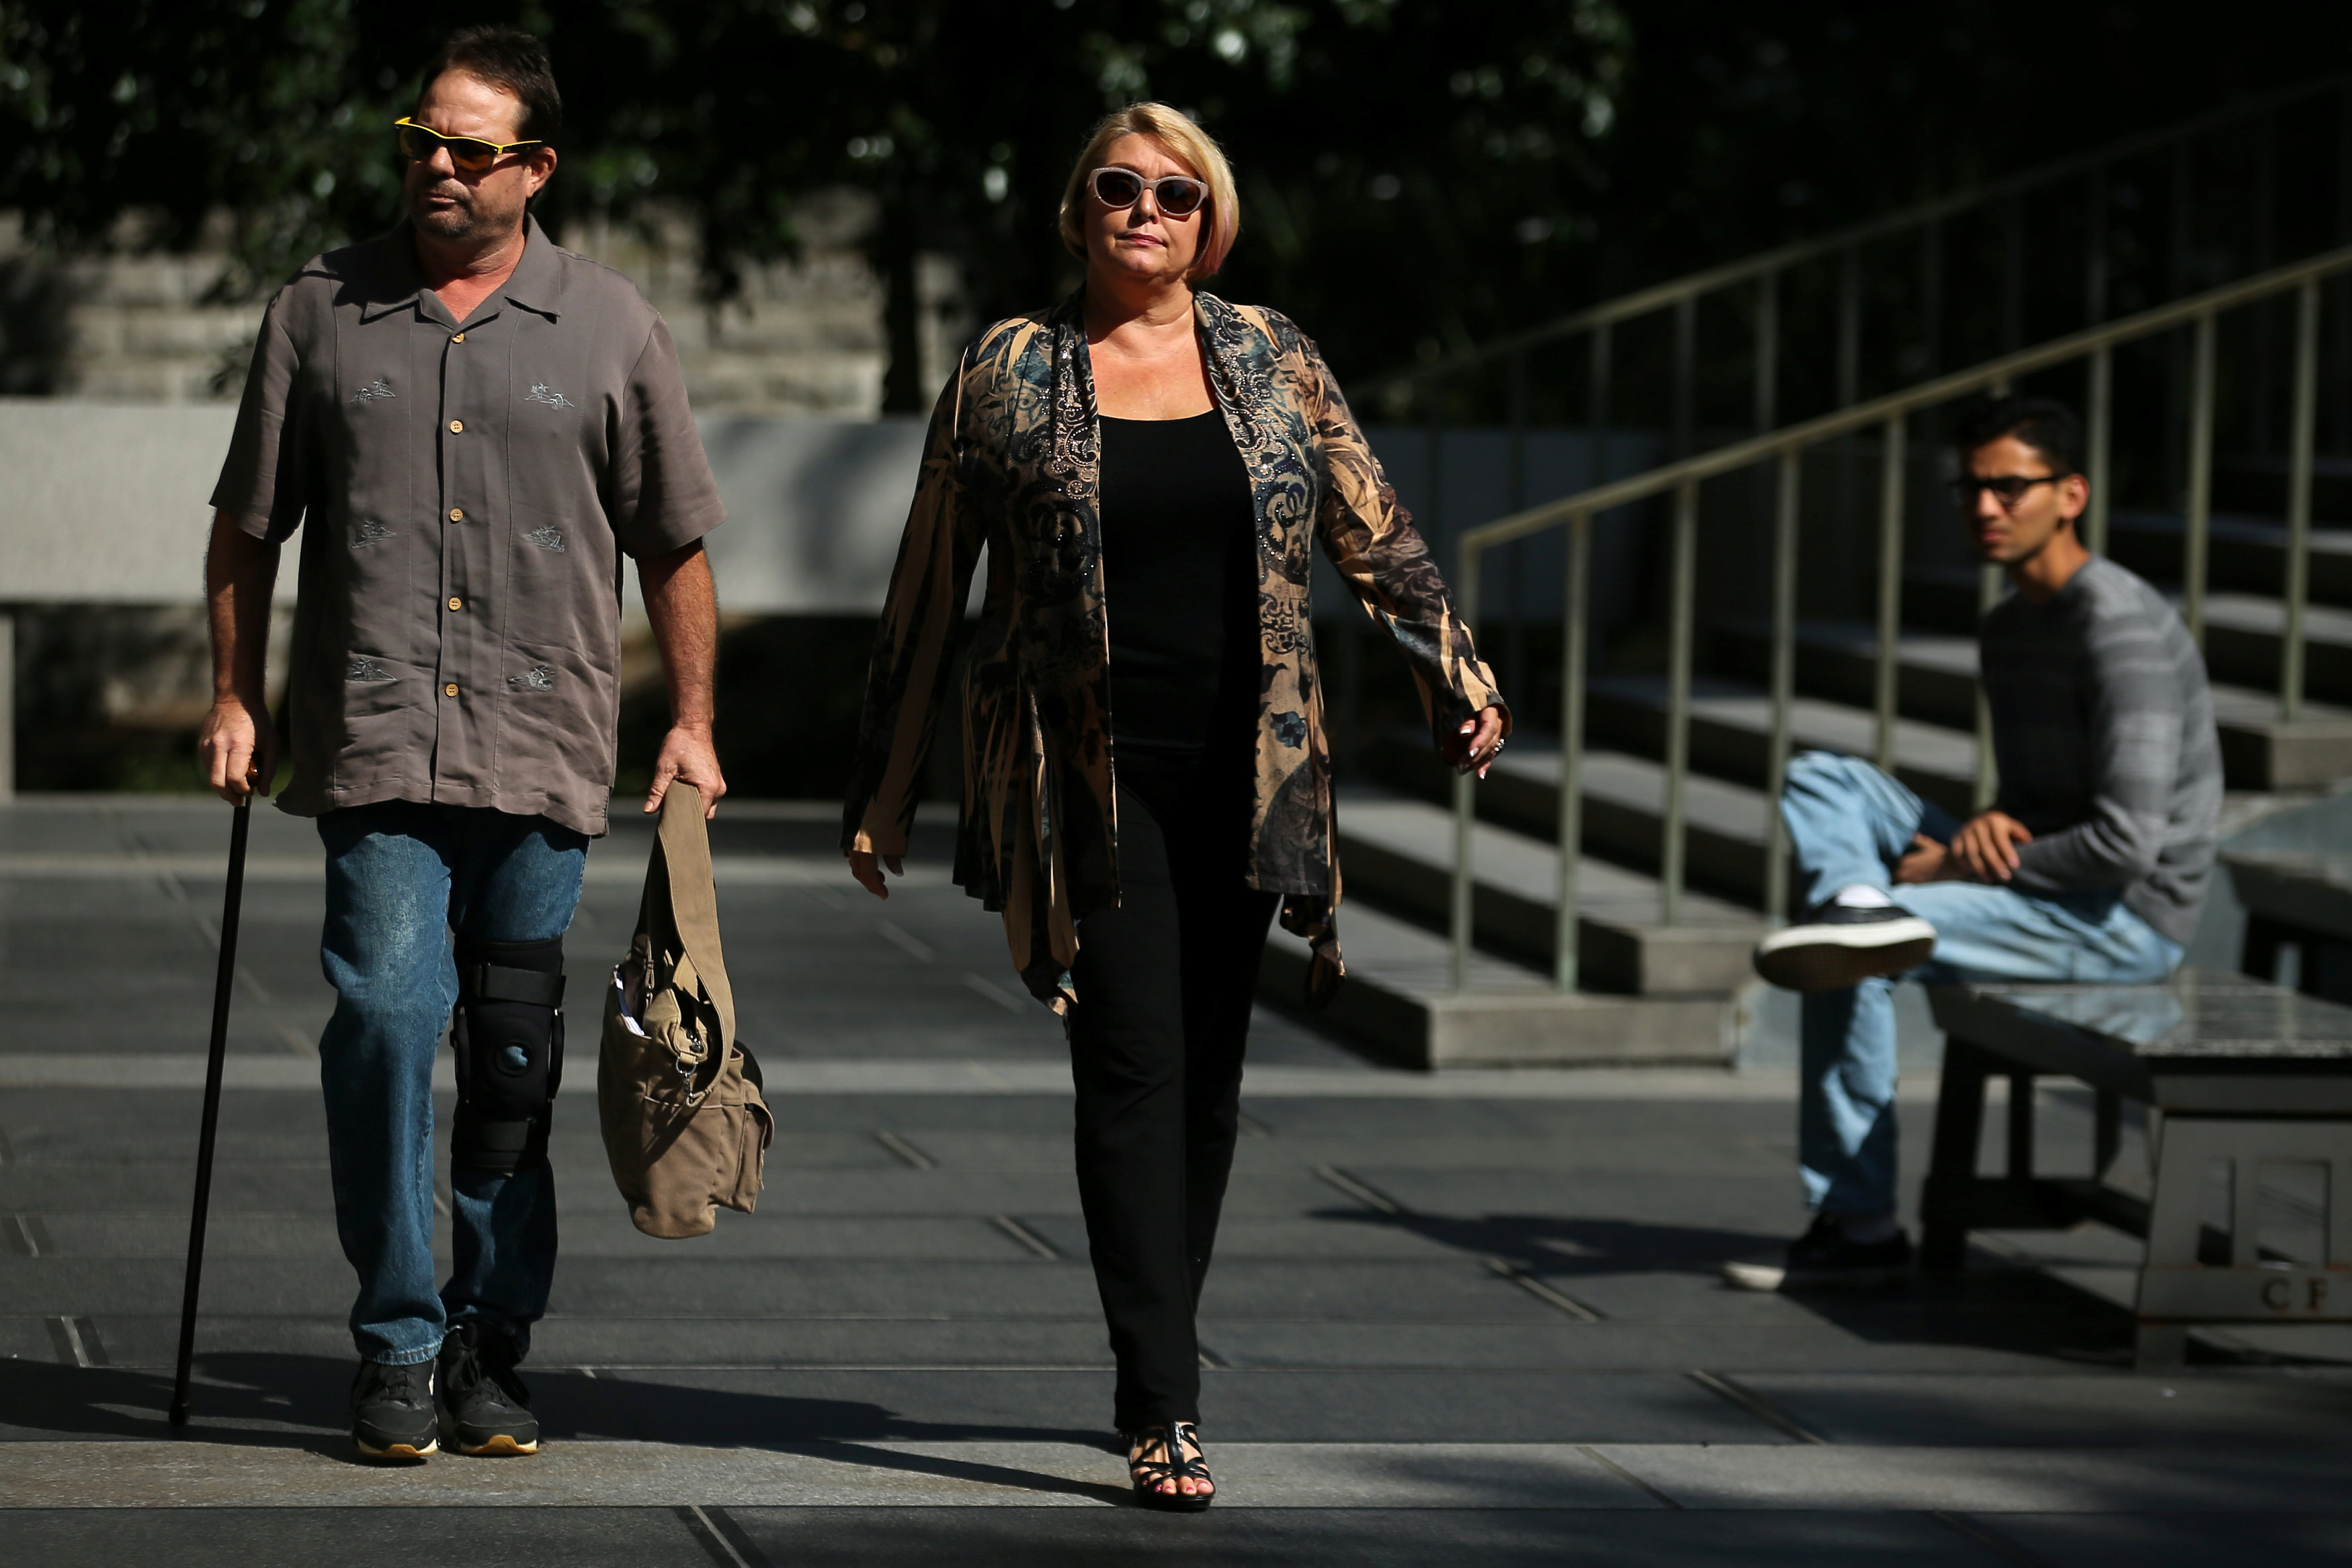 Samantha Geimer arrives at court to attend a hearing regarding the 40 year-old case against filmmaker Roman Polanski in Los Angeles, Calif., on June 9, 2017. (REUTERS/Mike Blake)